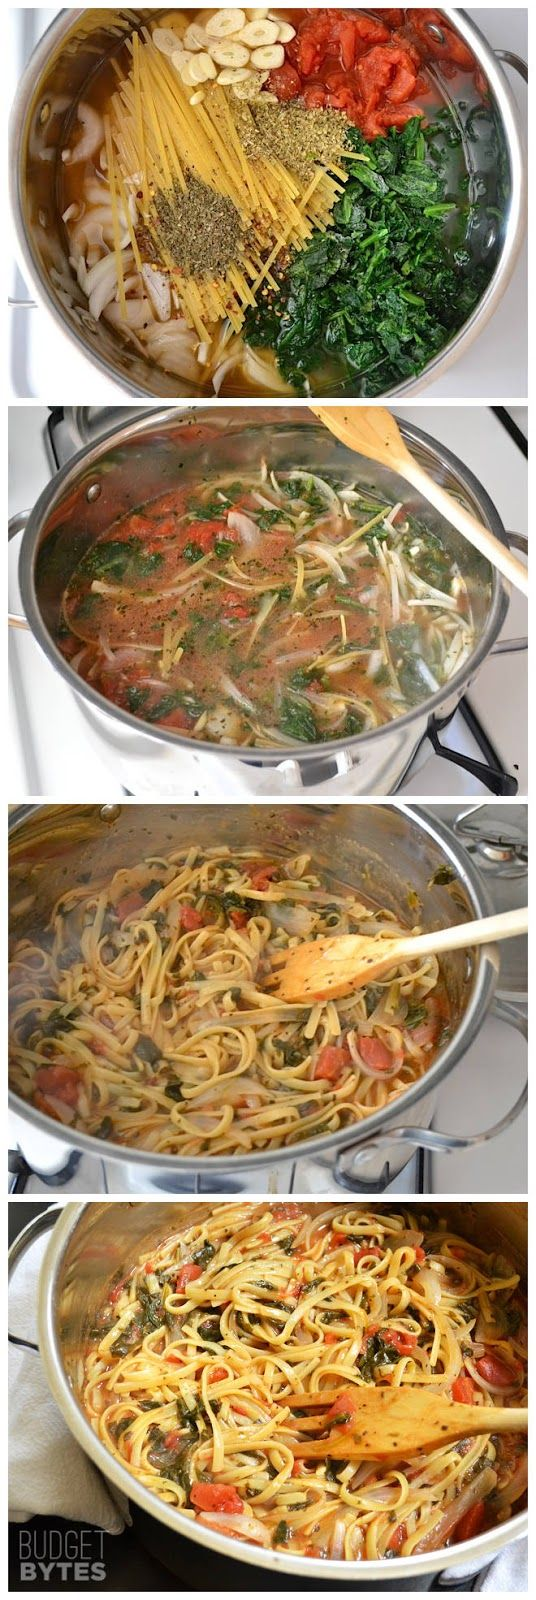 Italian Wonderpot...looks so easy and yummy when I want a quick and easy pasta dish